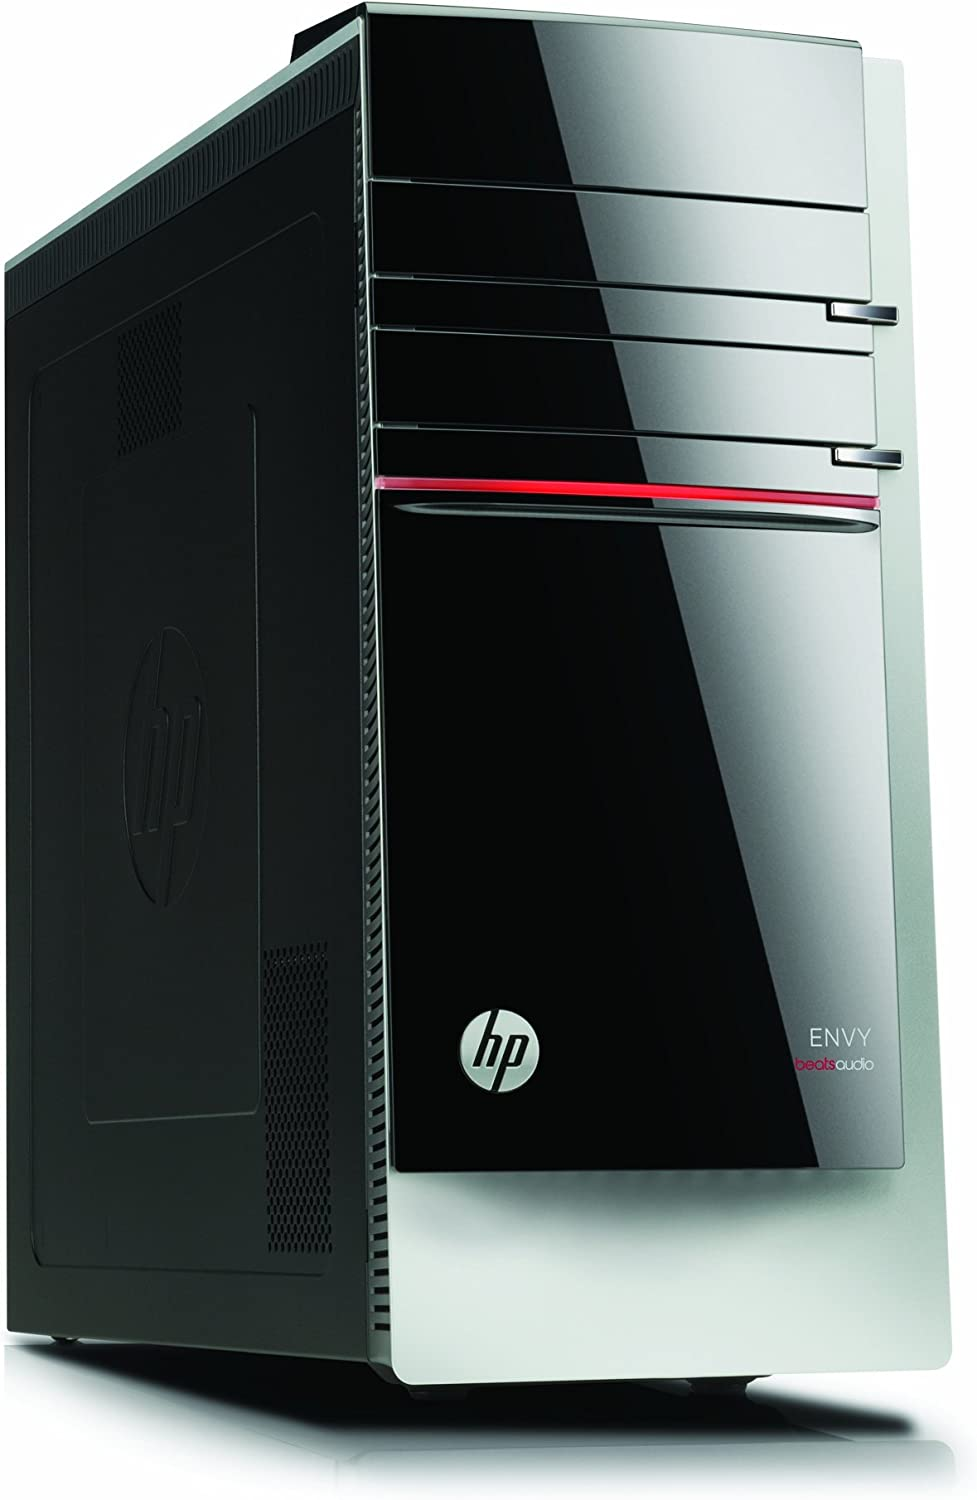 HP ENVY 700-150 Desktop with Beats Audio (3.4 GHz Intel Core i7-4770 Processor, 8GB DDR3, 1TB HDD, Windows 8) Black (Discontinued by Manufacturer)